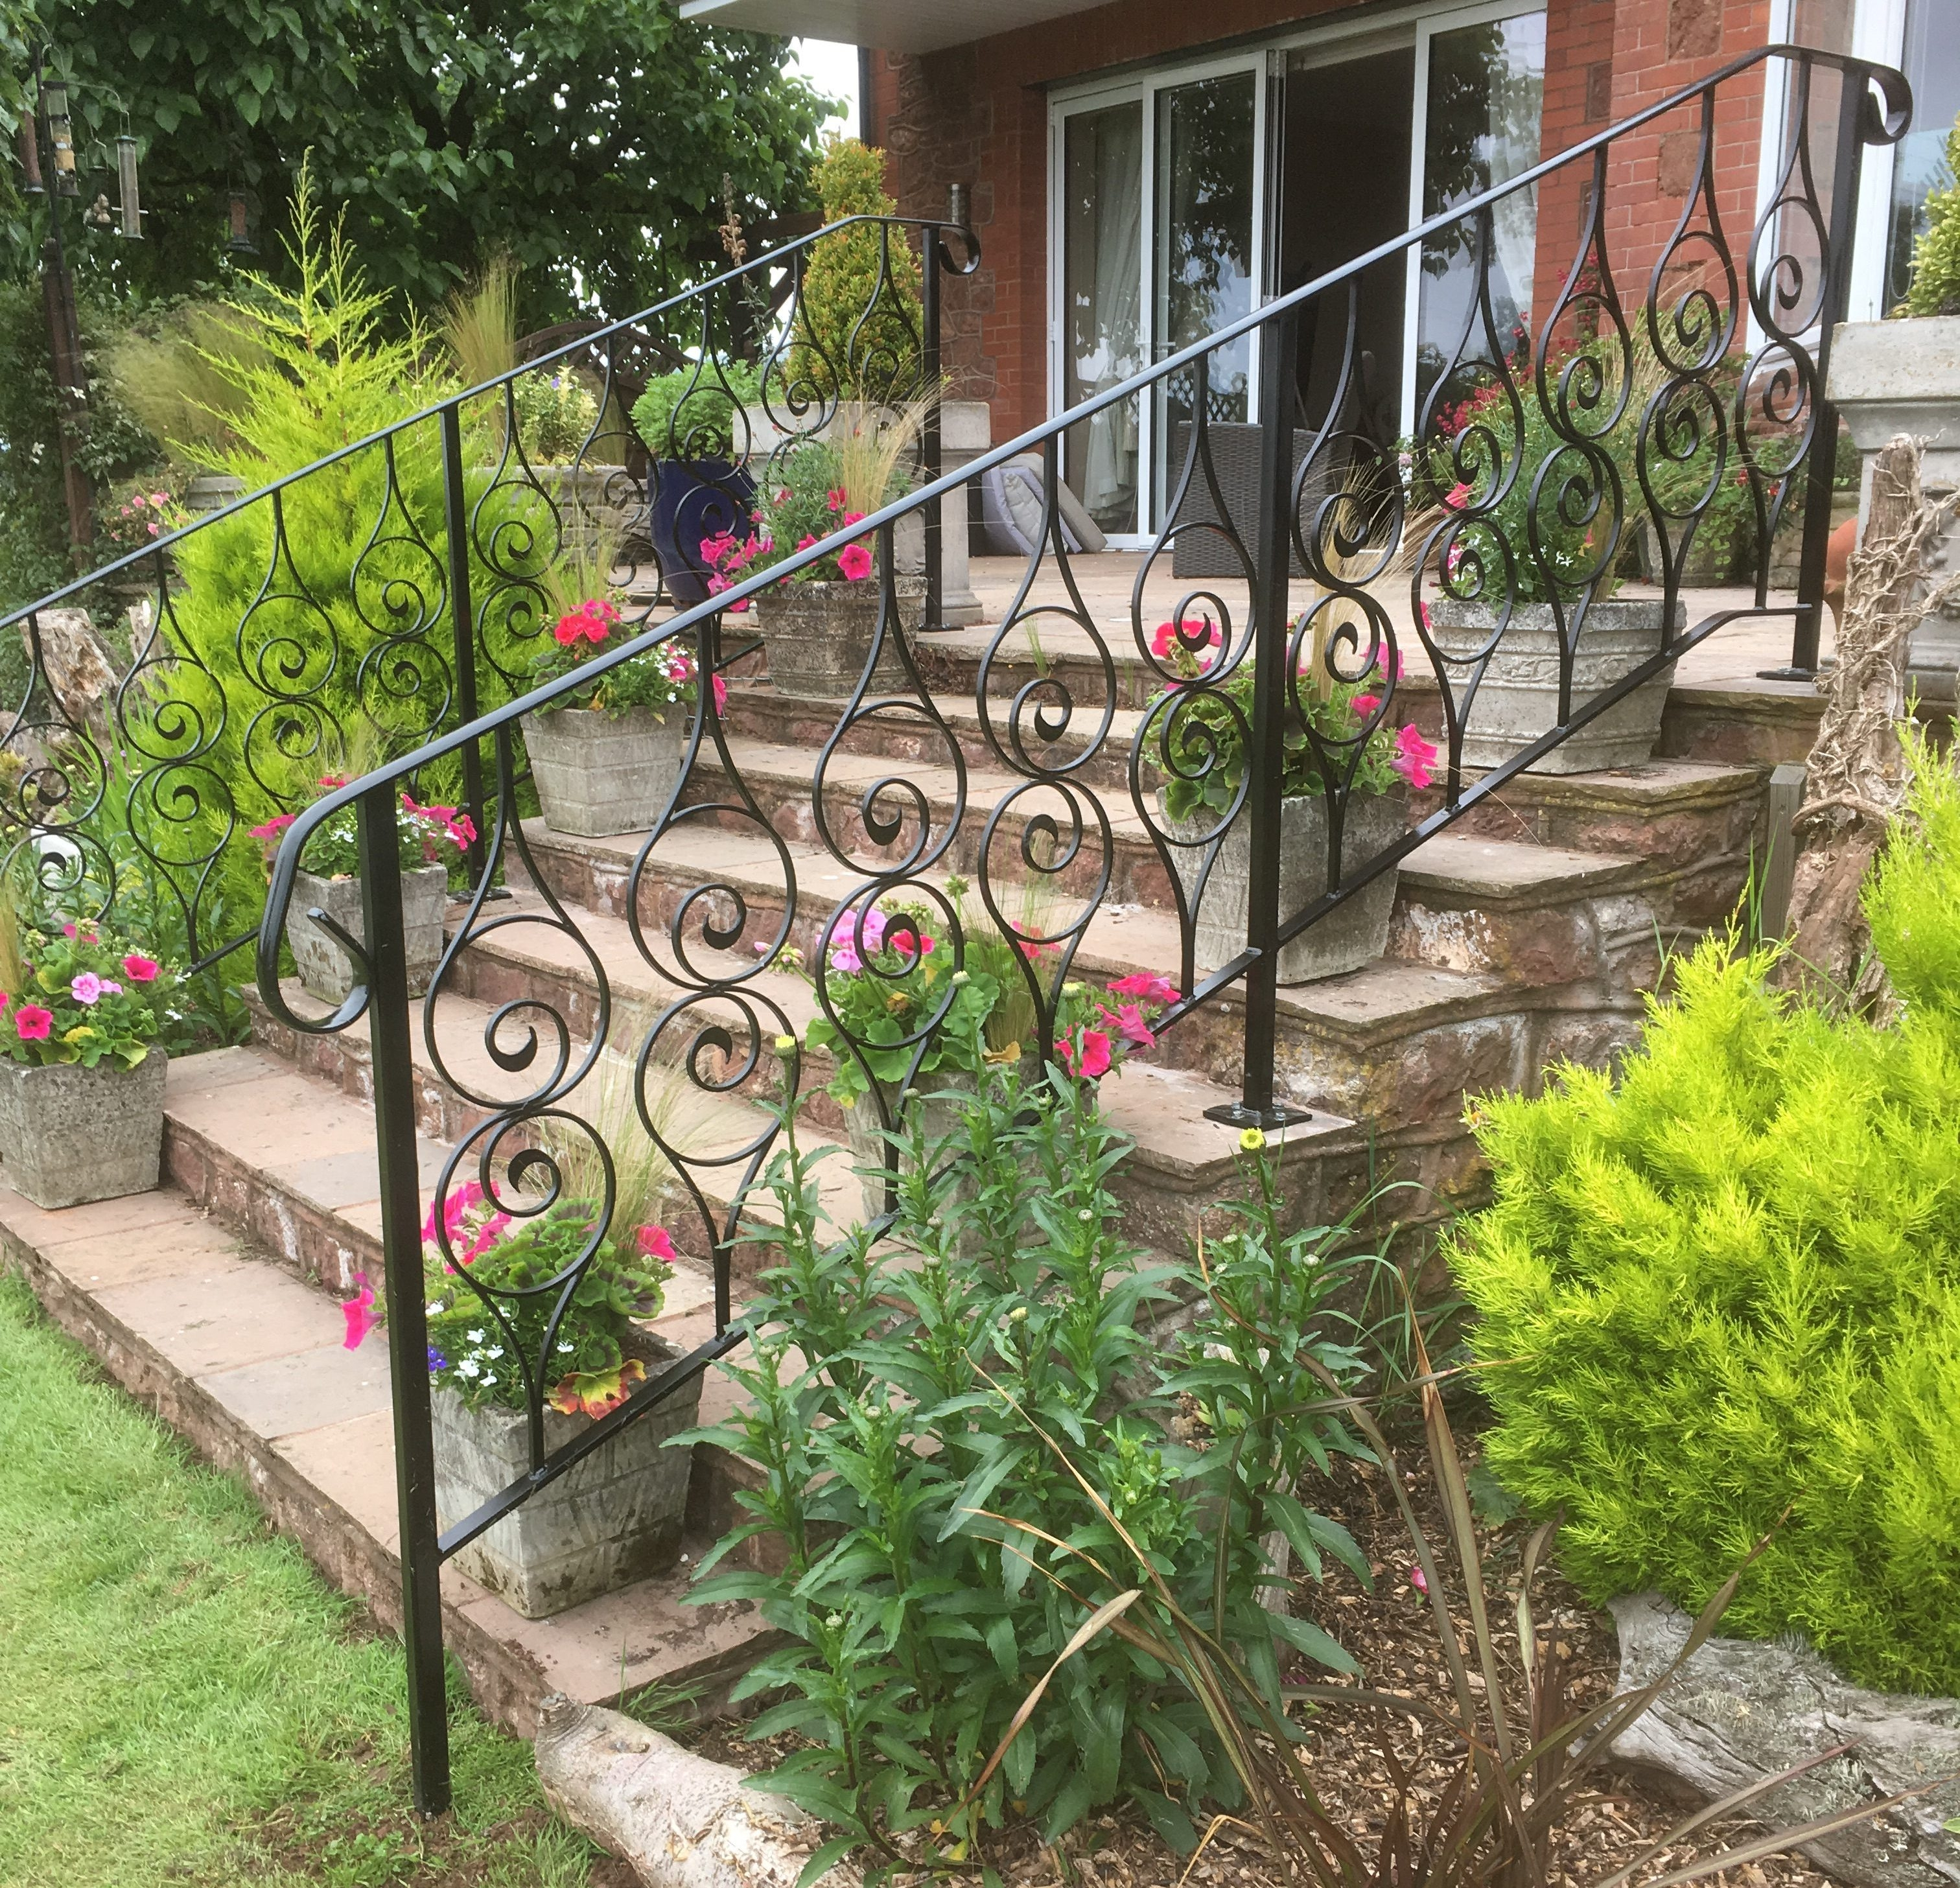 The Handrail People Supplying And Installing Outdoor Handrails   Wooden Handrail For Garden Steps   Stone Step   Free Standing   Metal   Wrought Iron   Front Door Step